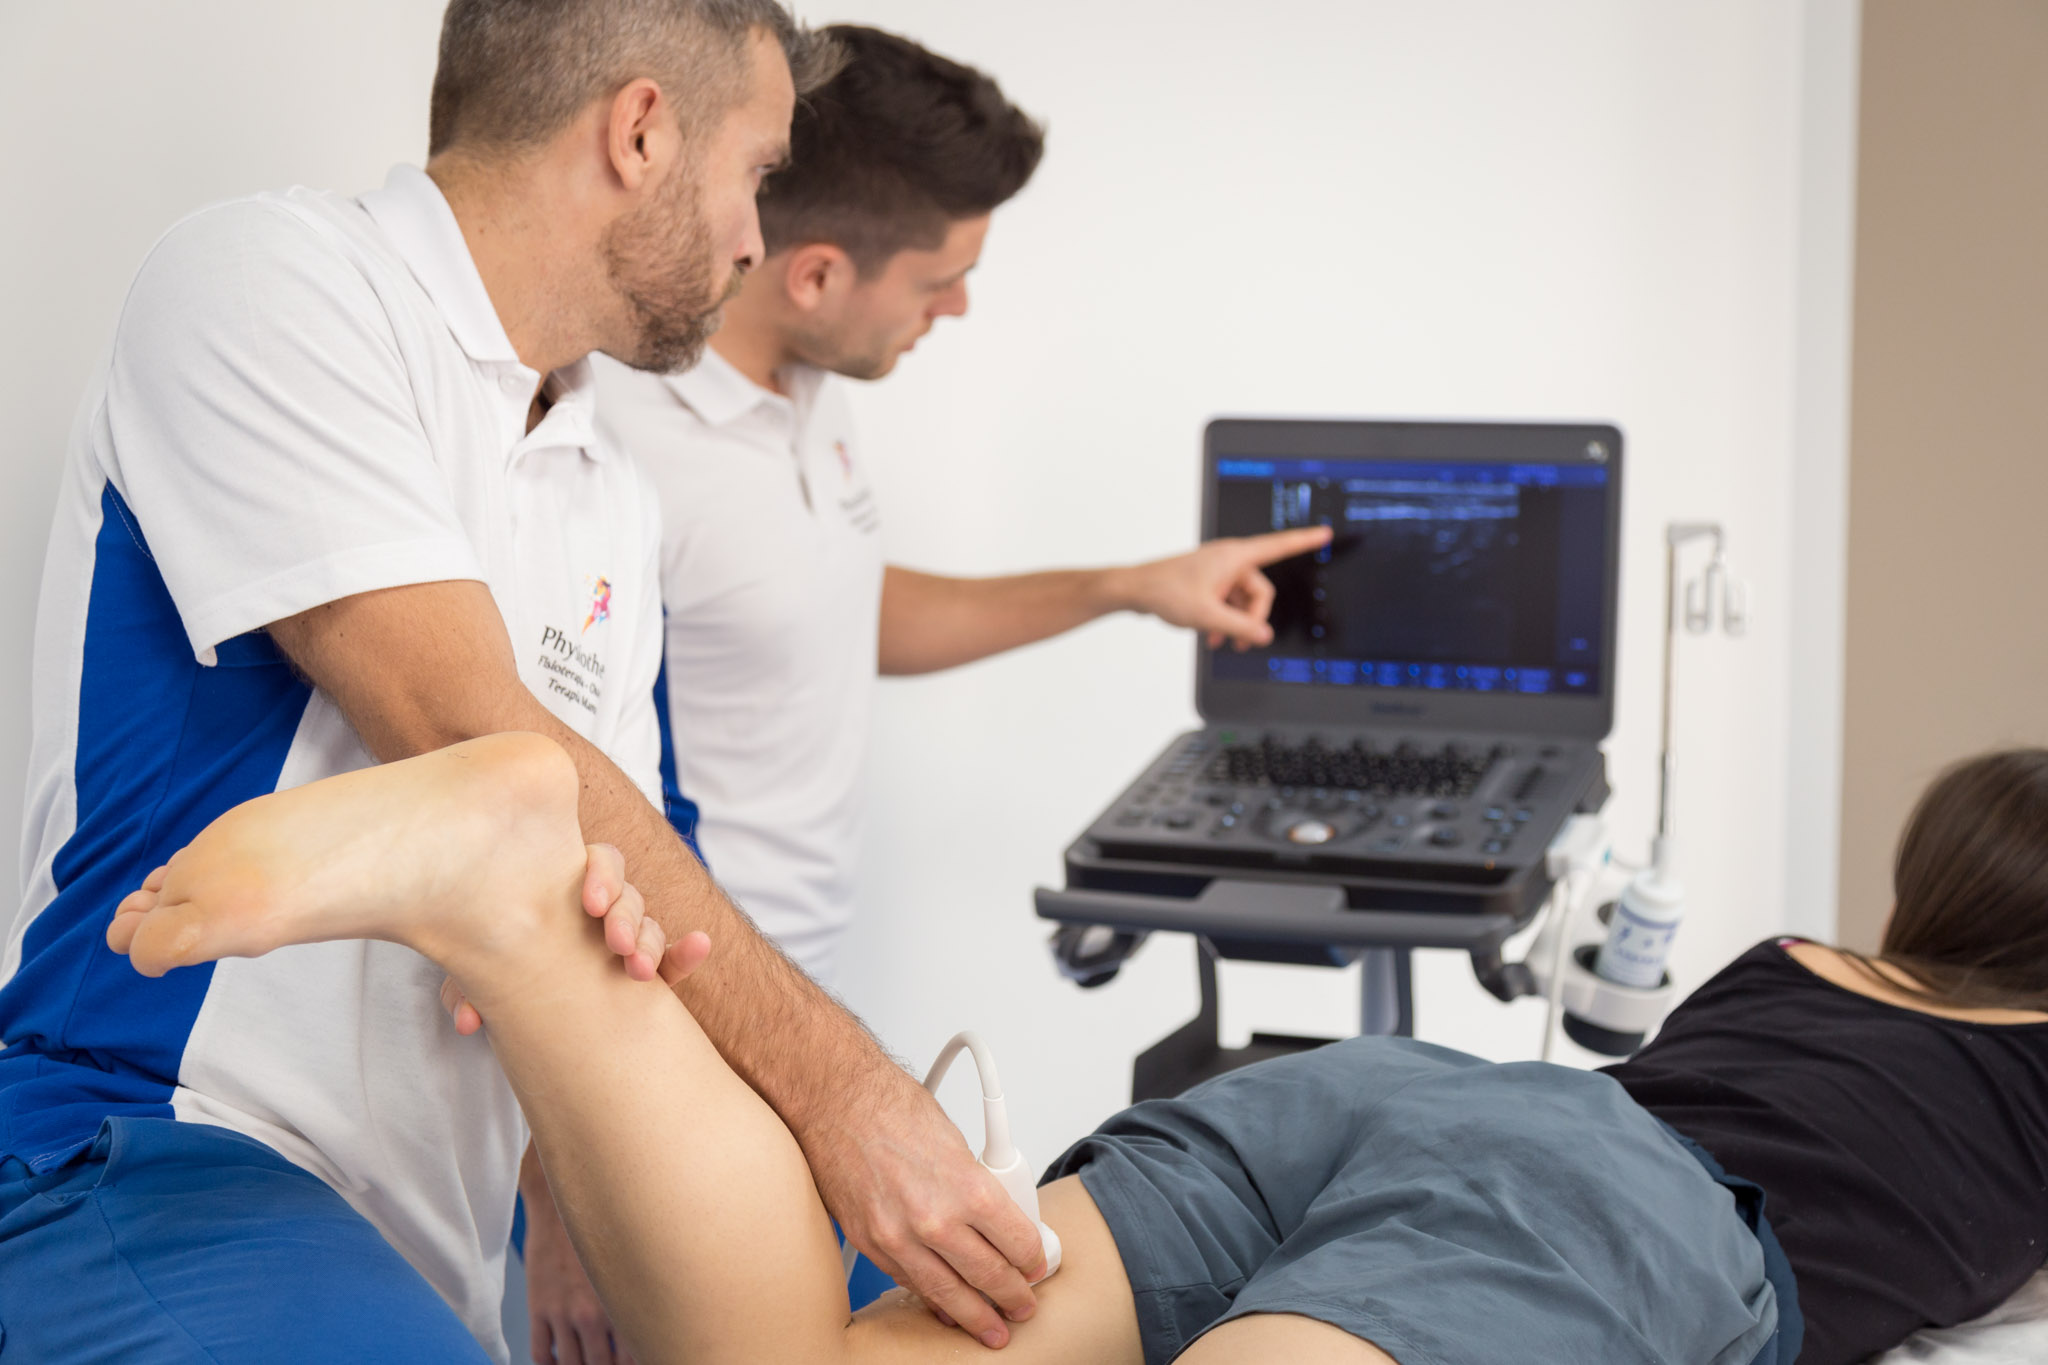 Fisioterapia Ecoguidata - Physiotherapy